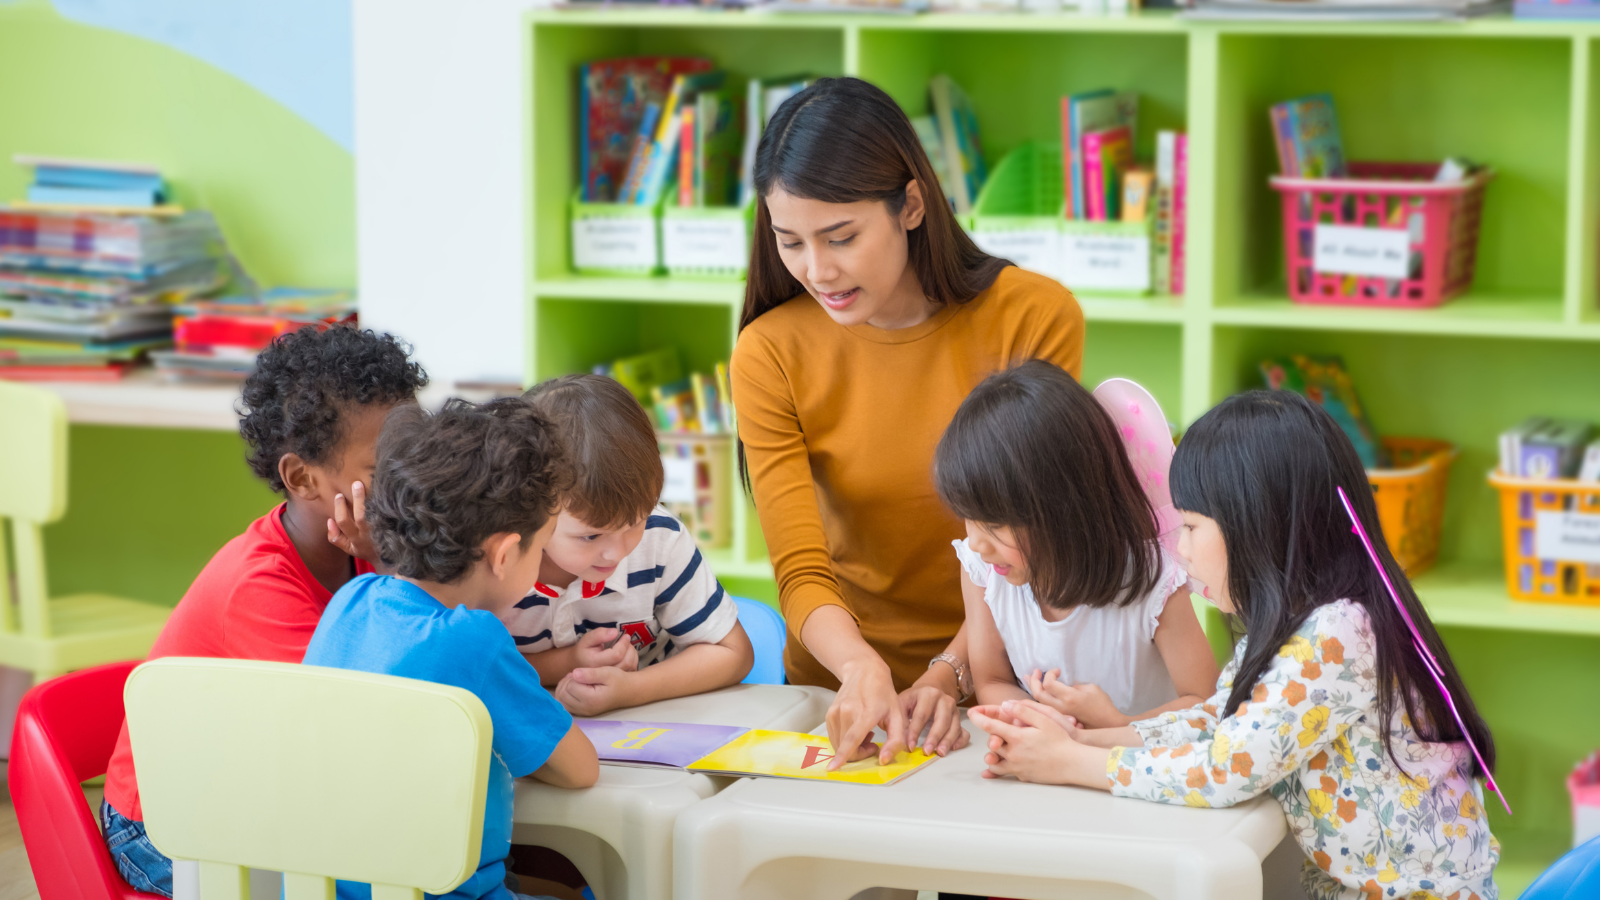 101 Ideas for Boosting Staff Engagement at Your Childcare Center or Preschool